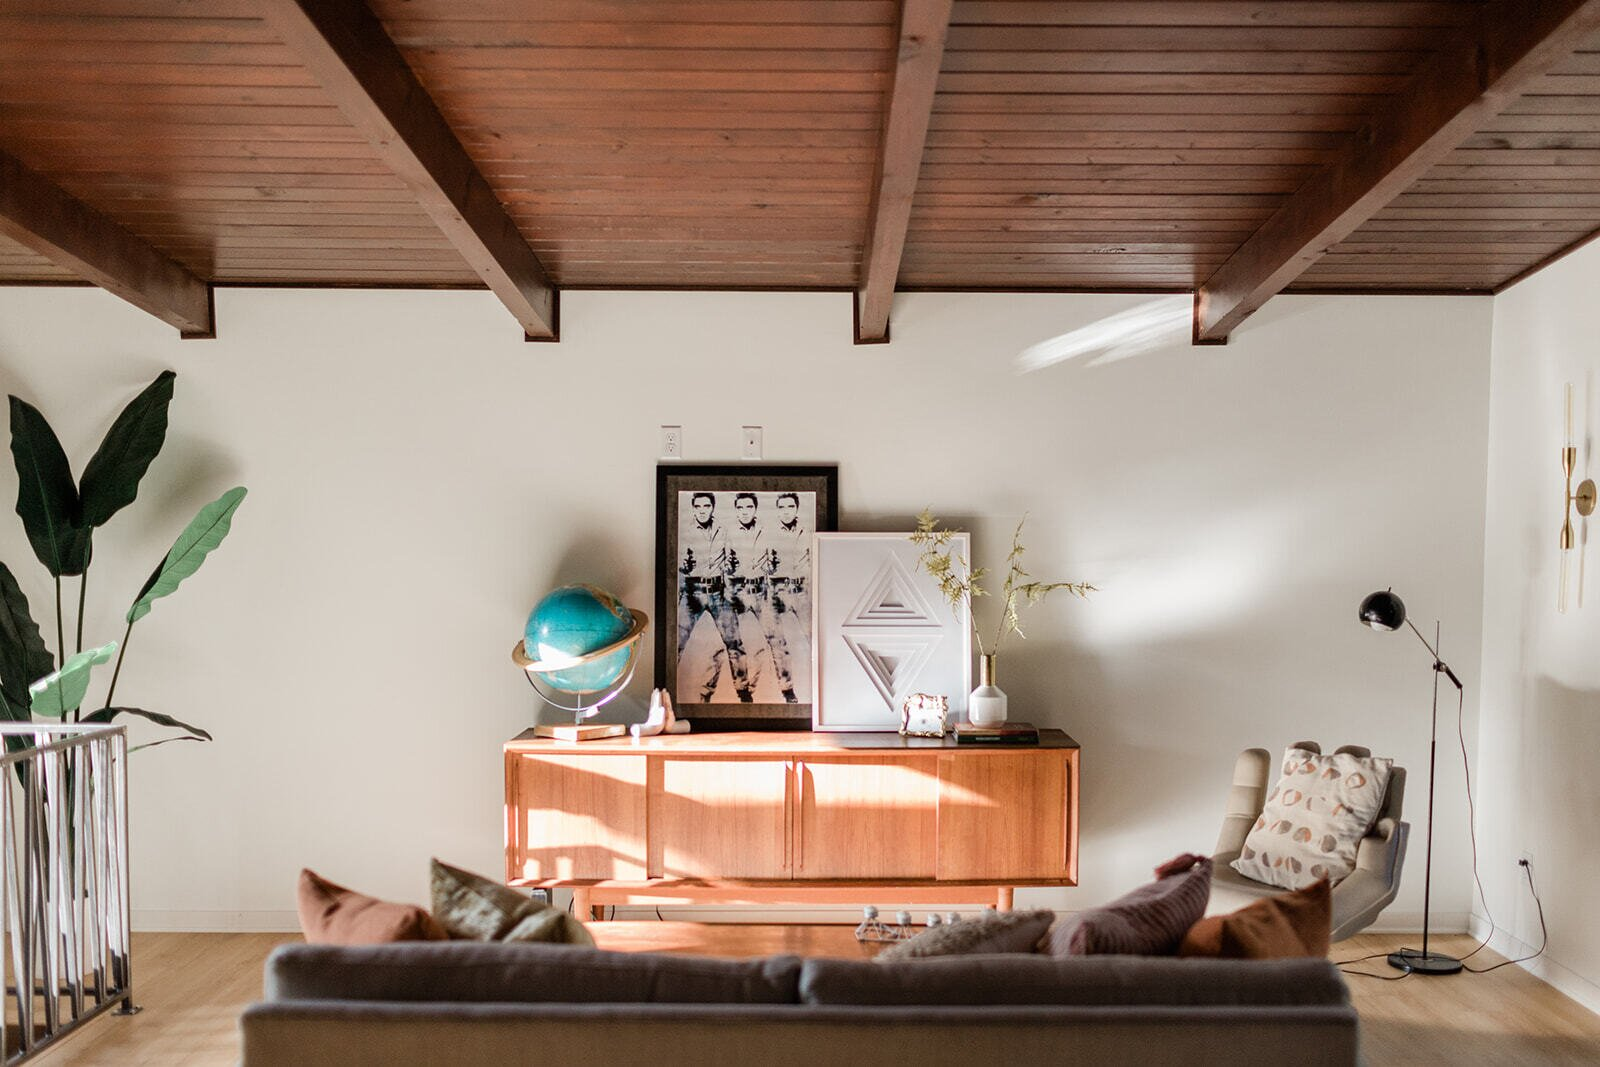 The renovation also retained the  home's original wood-clad and beamed ceilings found throughout the interior.  Photo 10 of 21 in Before & After: A Renovated Iowan Midcentury House Impresses With an Affordable $330K Price Point